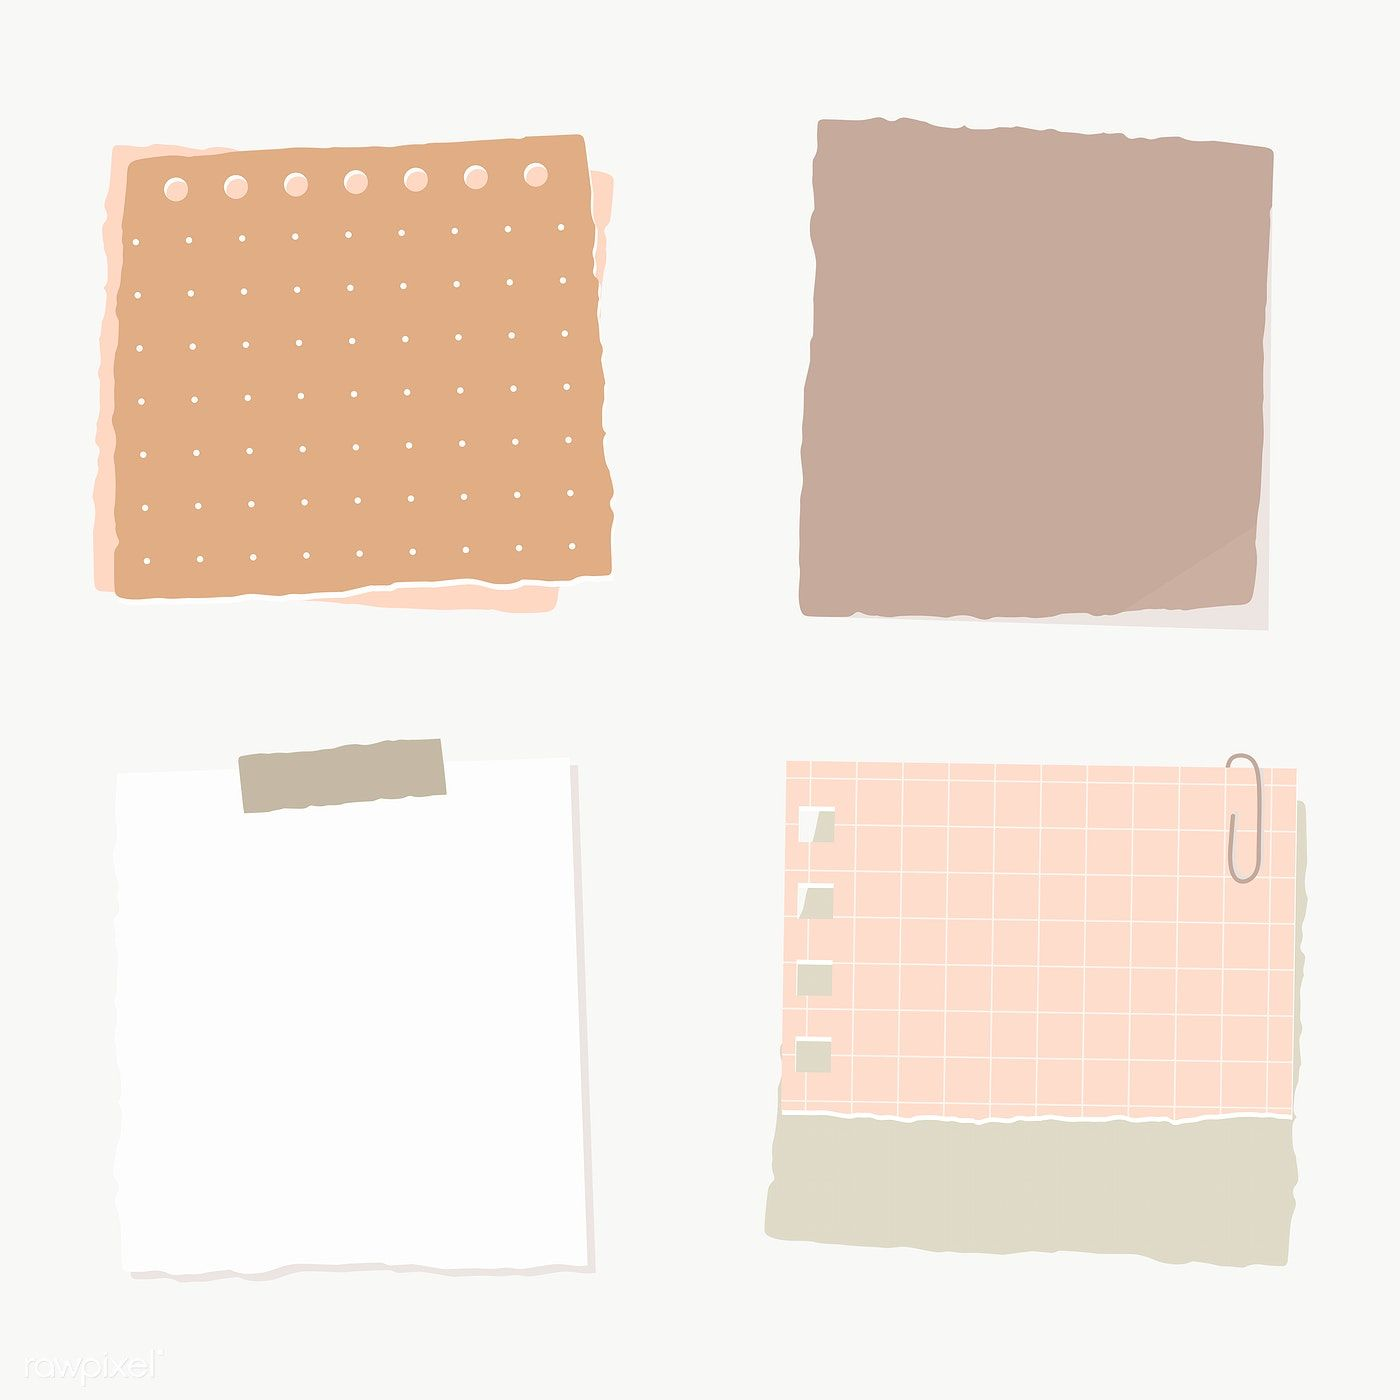 Torn Paper Note Collection Social Ads Template Transparent Png Free Image By Rawpixel Com Manotang Torn Paper Note Paper Sticky Notes Collection